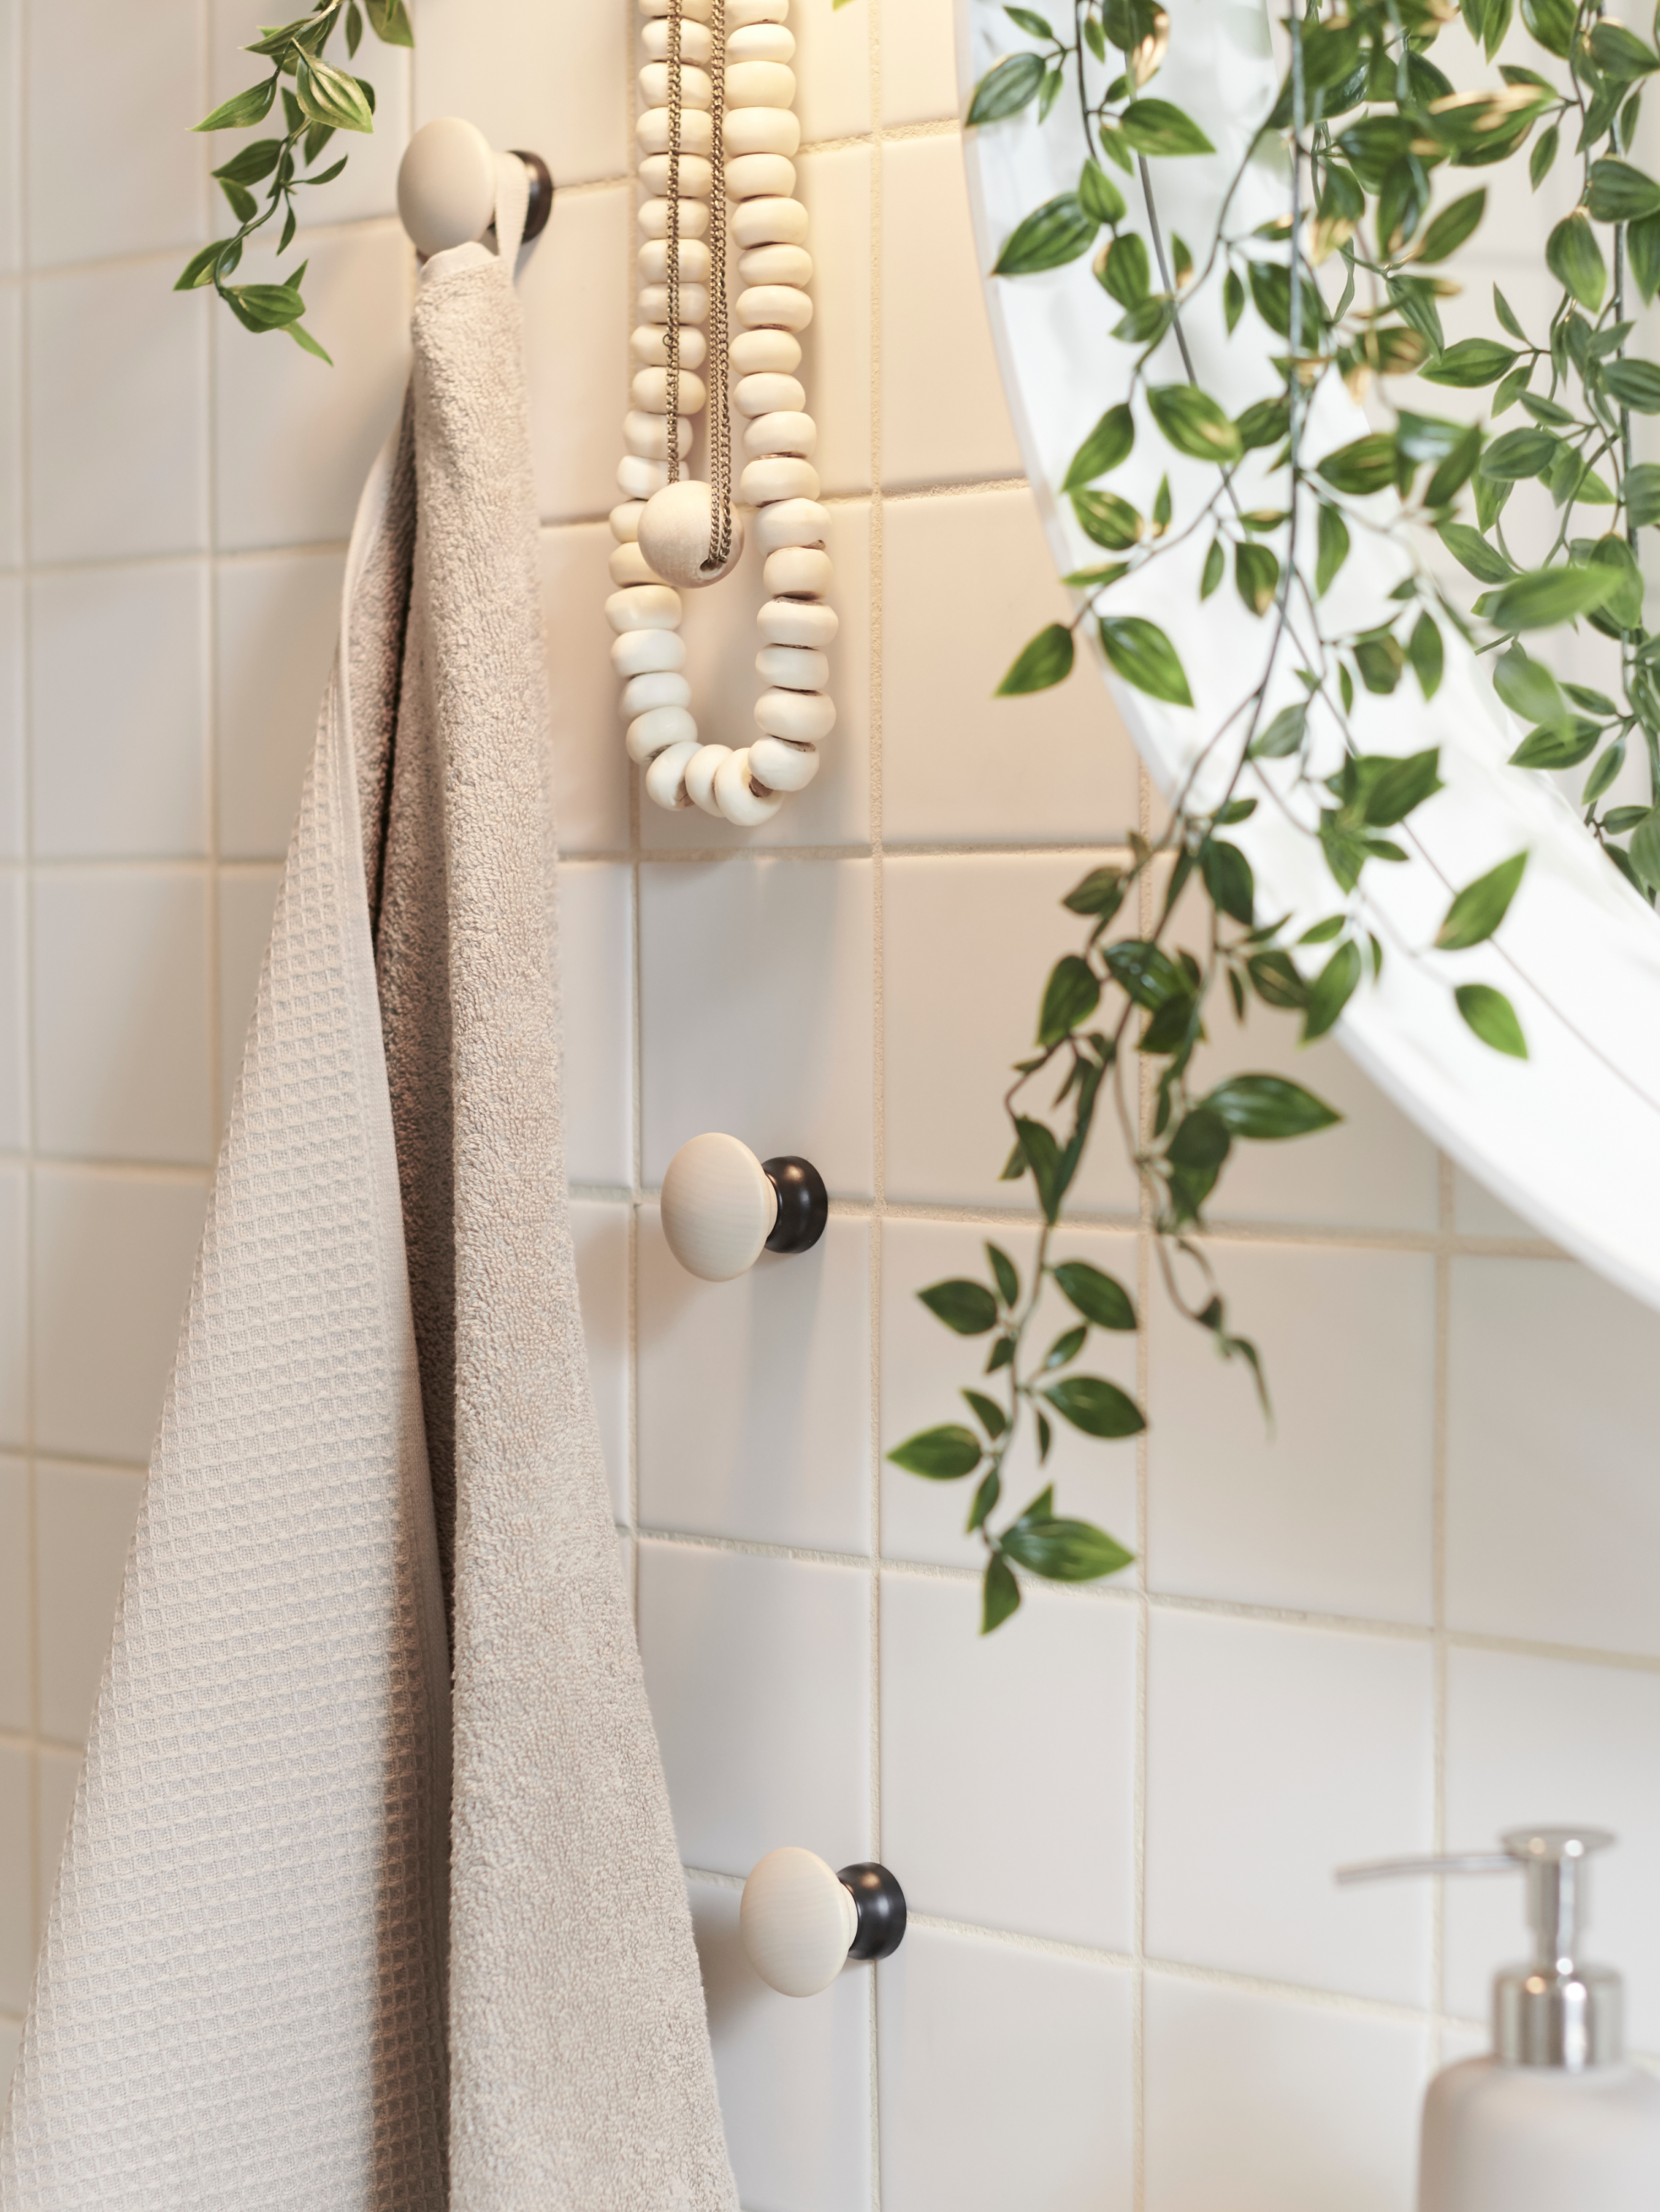 A beige SALVIKEN bath towel and necklaces hanging beside a mirror on LILLASJÖN knobs in a bathroom with white tiles.